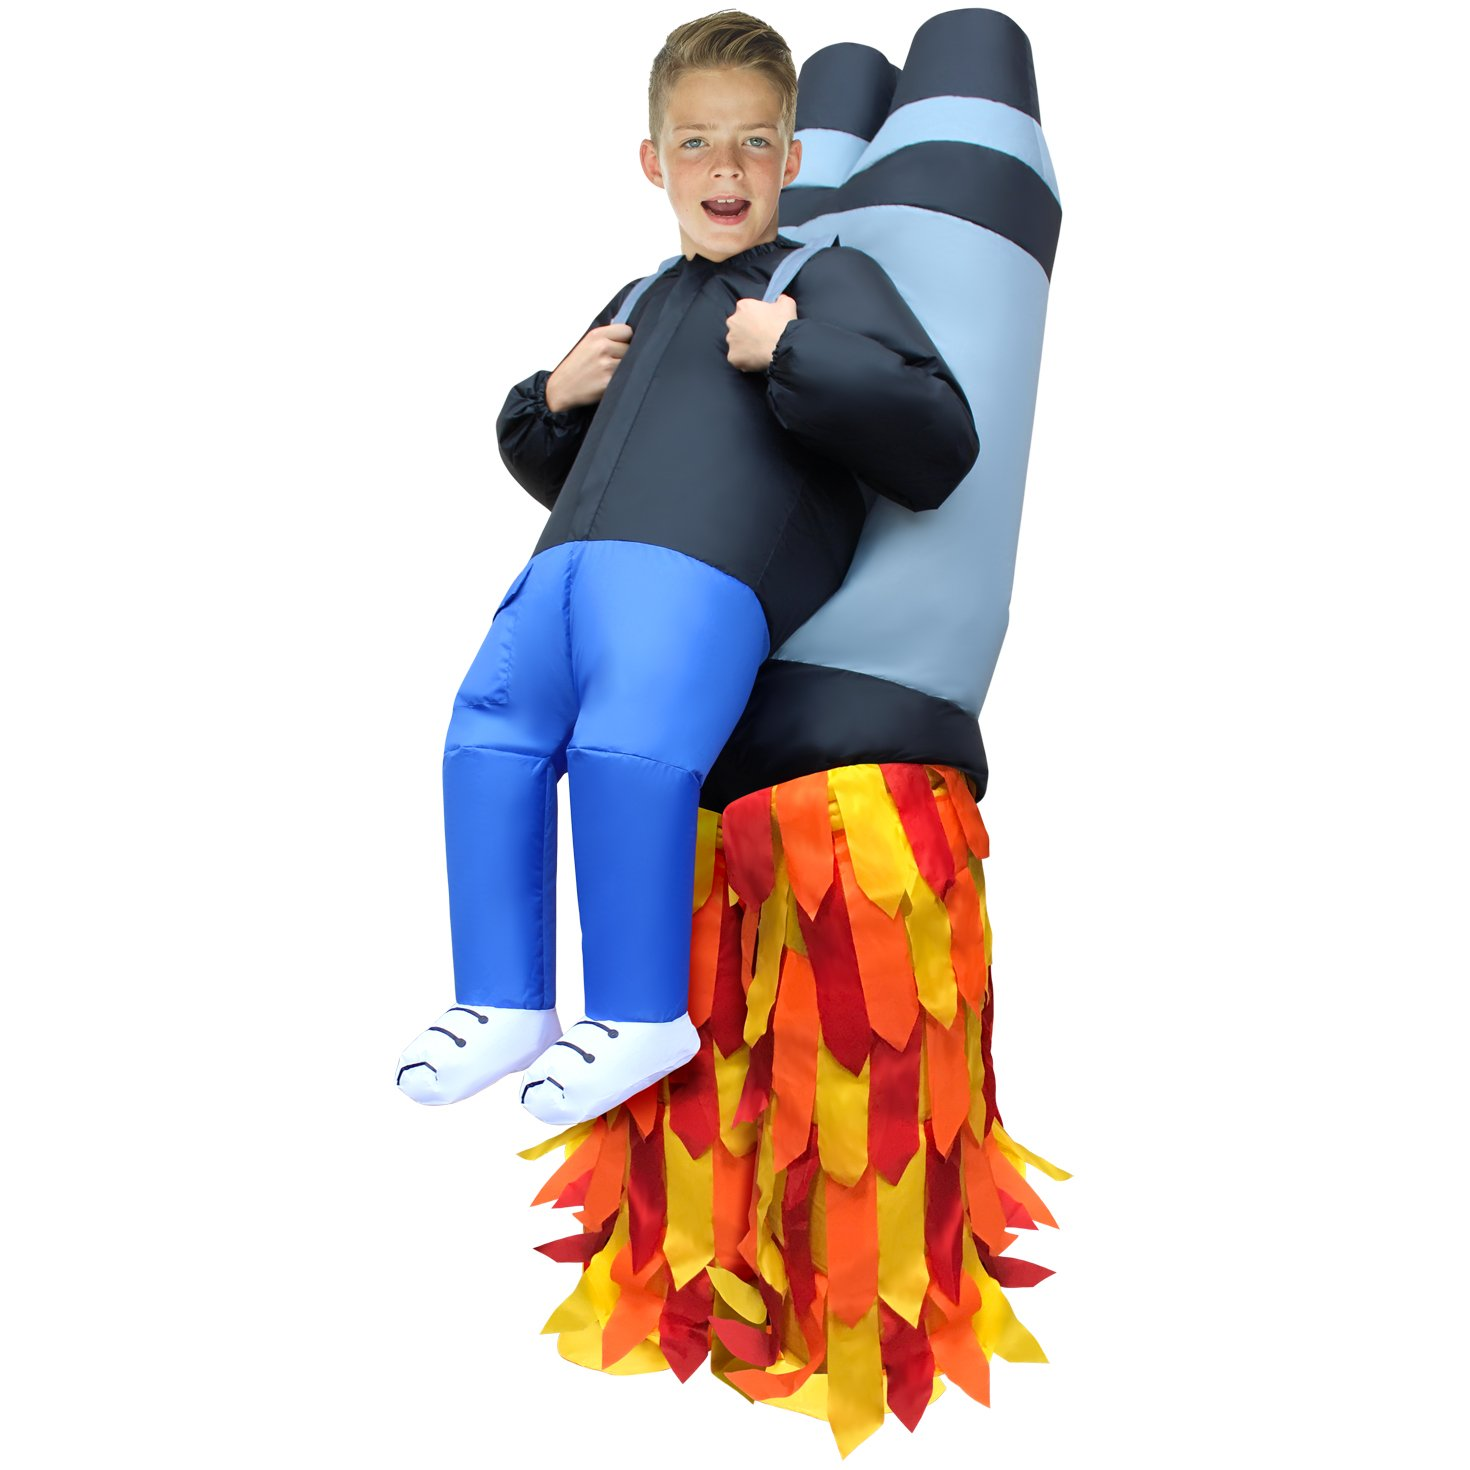 Morph MCKROIJP Boys Inflatable Costume, One Size by Morph